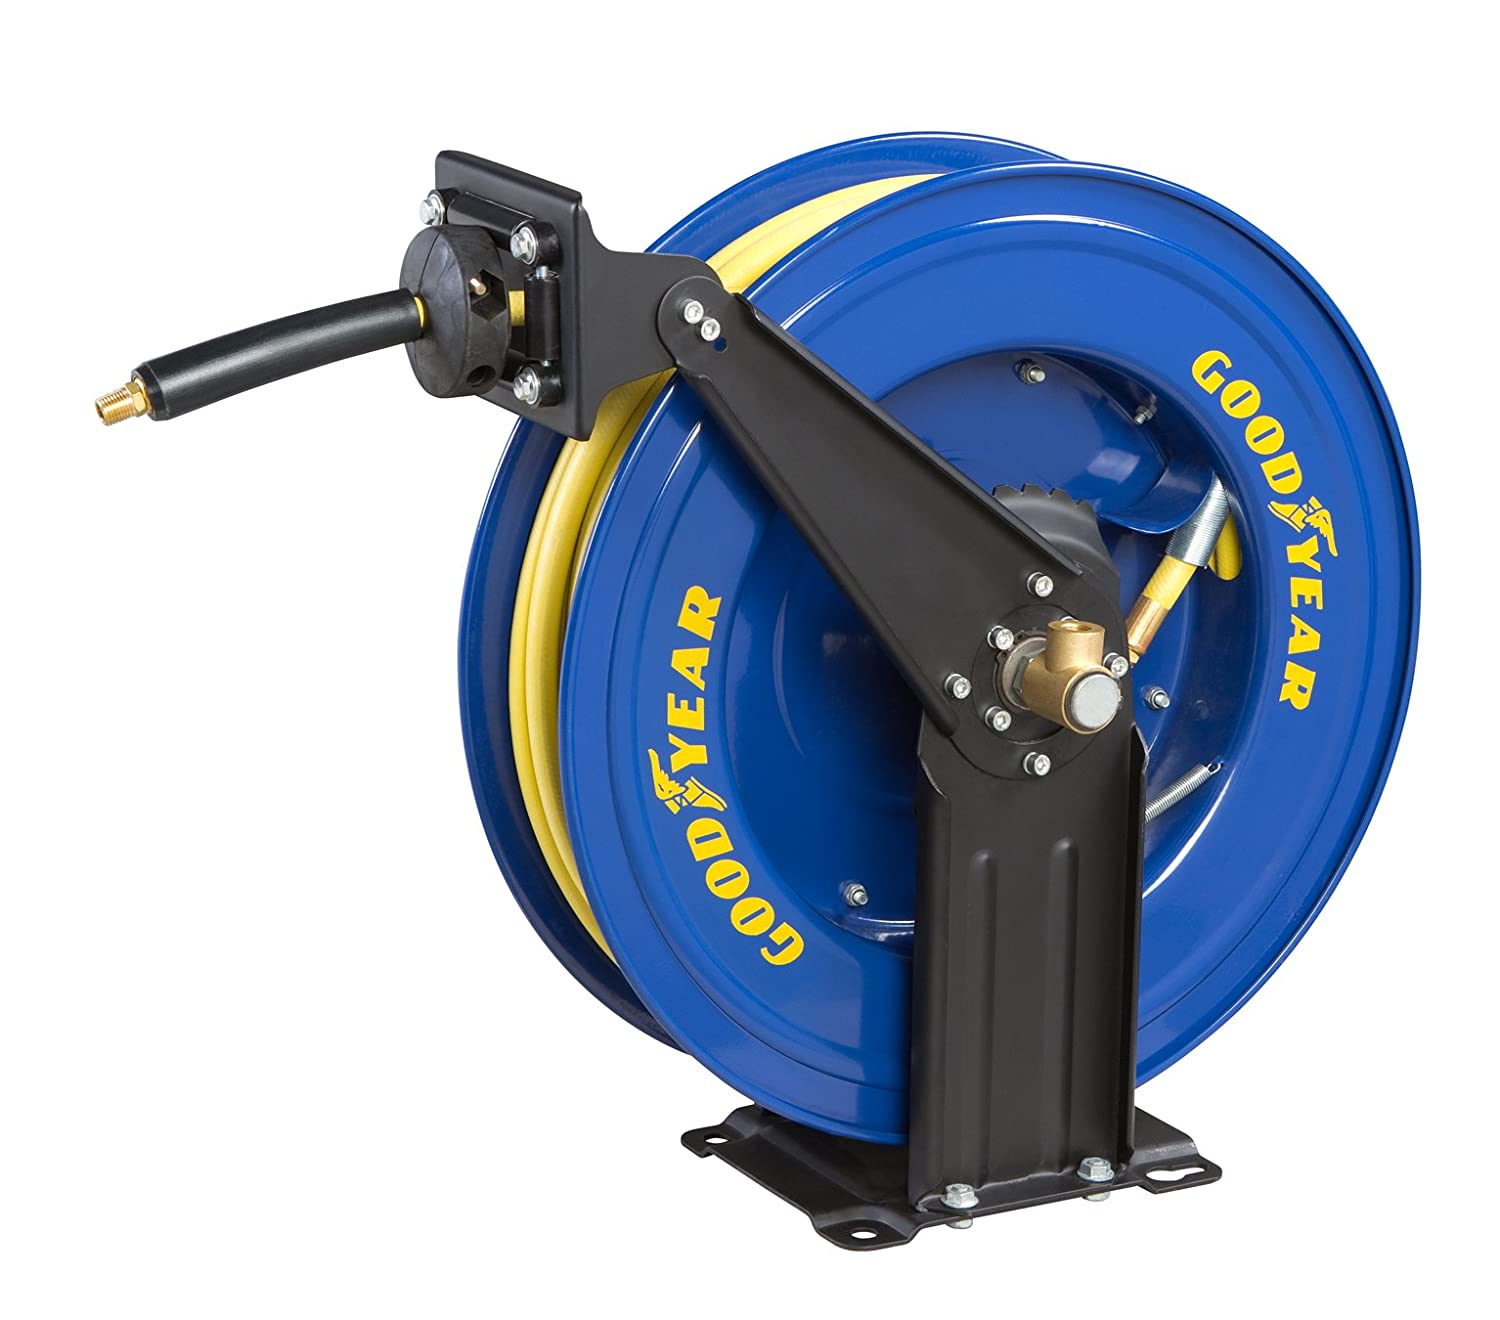 GOODYEAR 46731 3/8-Inch by 50-Feet Retractable Air Hose Reel [Discontinued] - Air Tool Hose Reels - Amazon.com  sc 1 st  Amazon.com & GOODYEAR 46731 3/8-Inch by 50-Feet Retractable Air Hose Reel ...